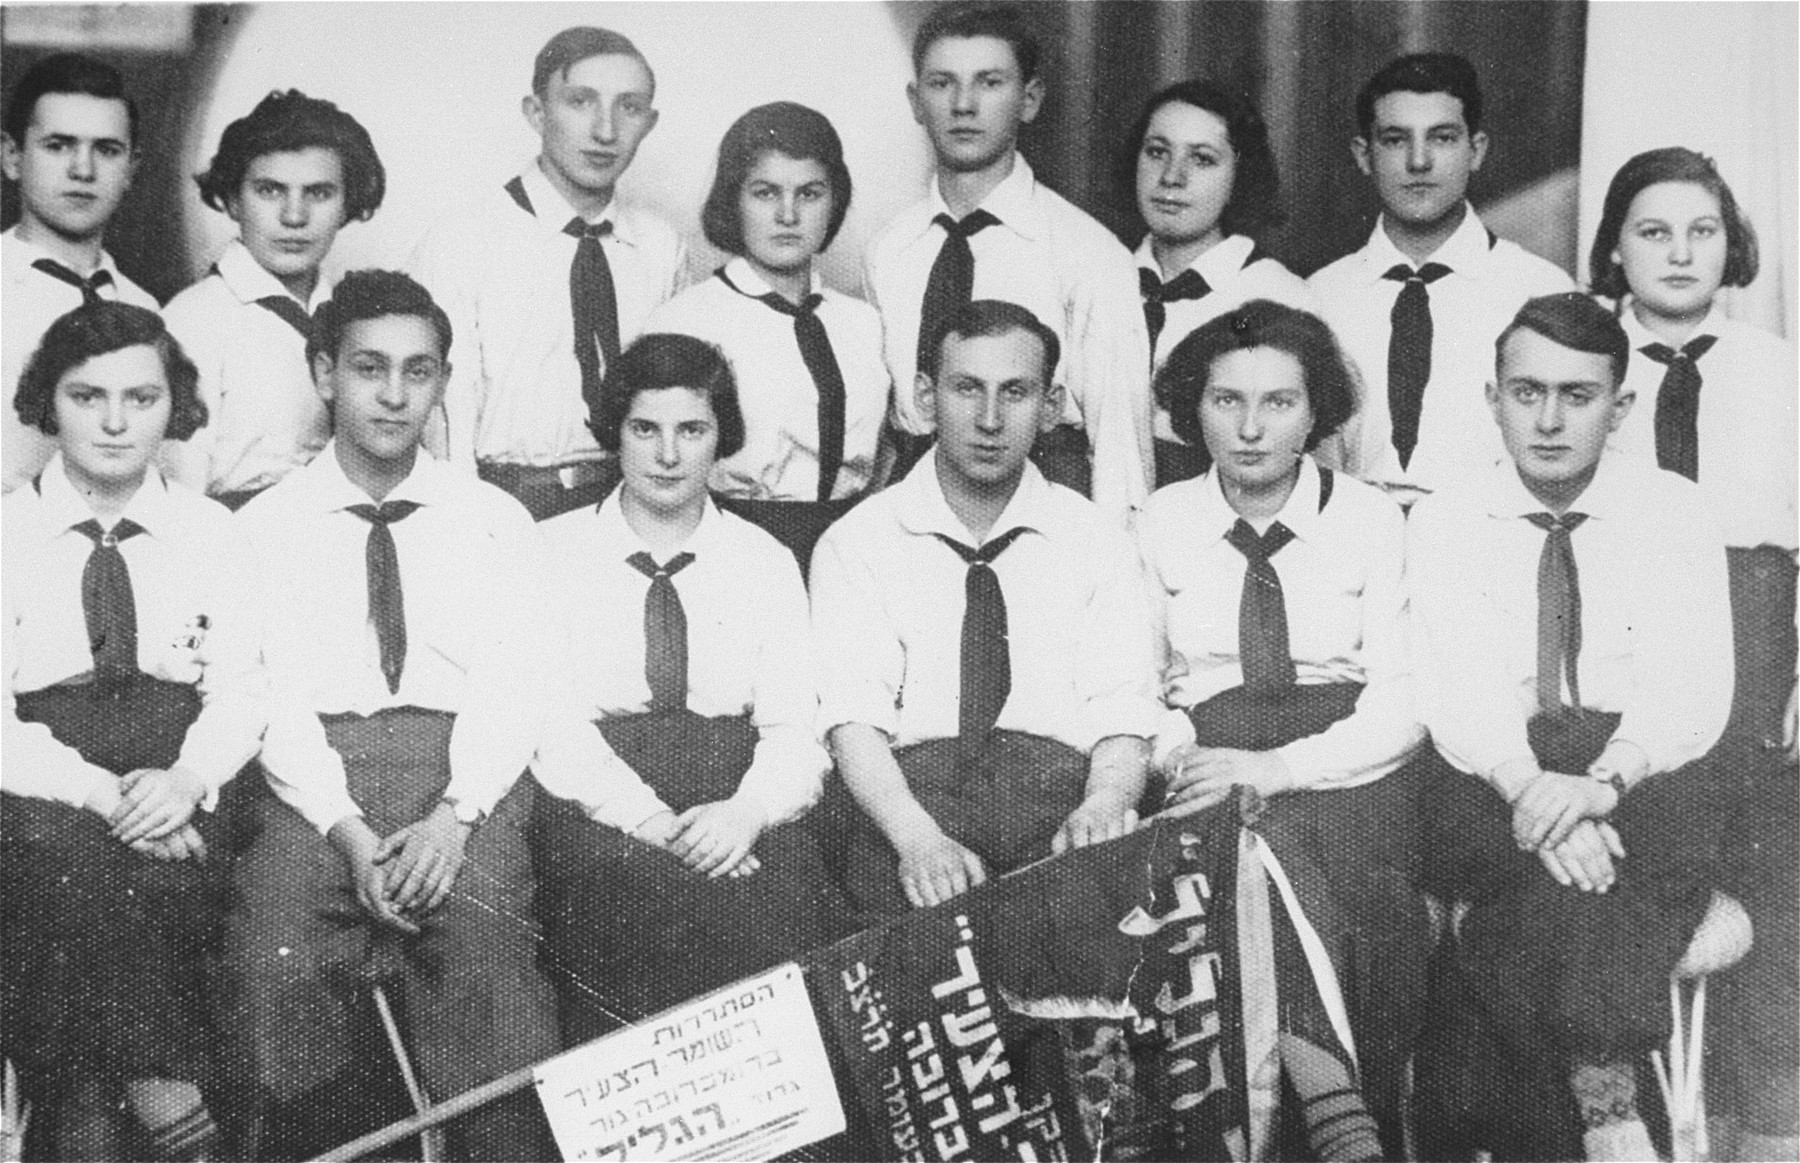 """A group portrait of """"Hagalil"""" unit of """"Hashomer Hatzair"""" Zionist youth organization in Dabrowa Gornicza.  Seated second from right, in the first row is Sala Rozen, donor's sister.   To her right are Isser Lemkowicz, Devorah (?) Kleiman and on the far right is Simen Rosenblum.  Third from the left standing is Lemul Lenkowicz and standing on the far right is Plawaes."""